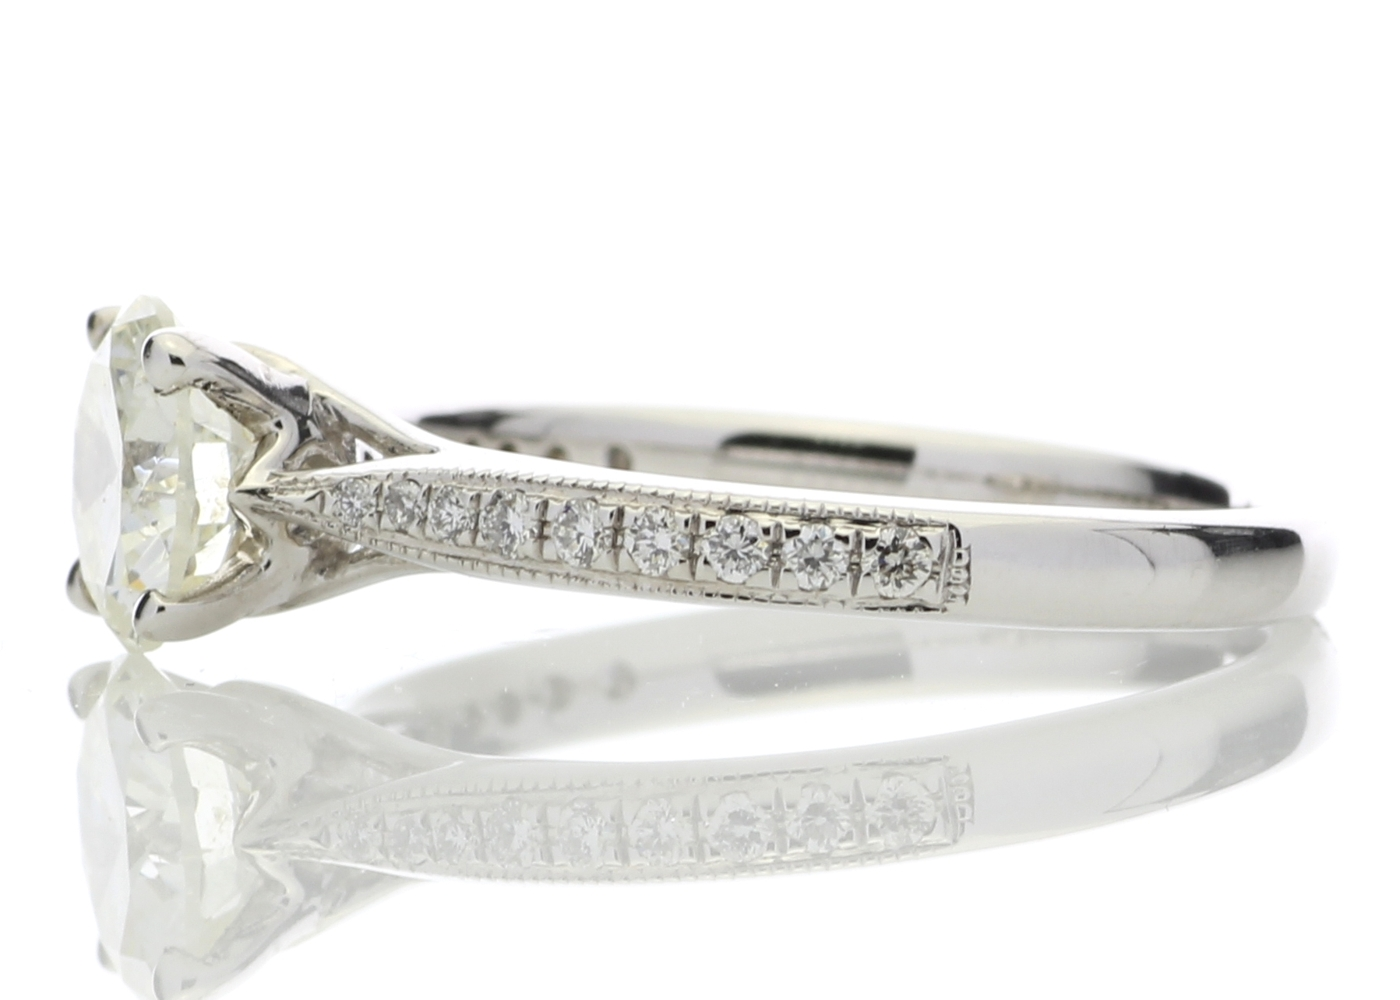 18ct White Gold Diamond Ring With Stone Set Shoulders 1.15 Carats - Image 3 of 5